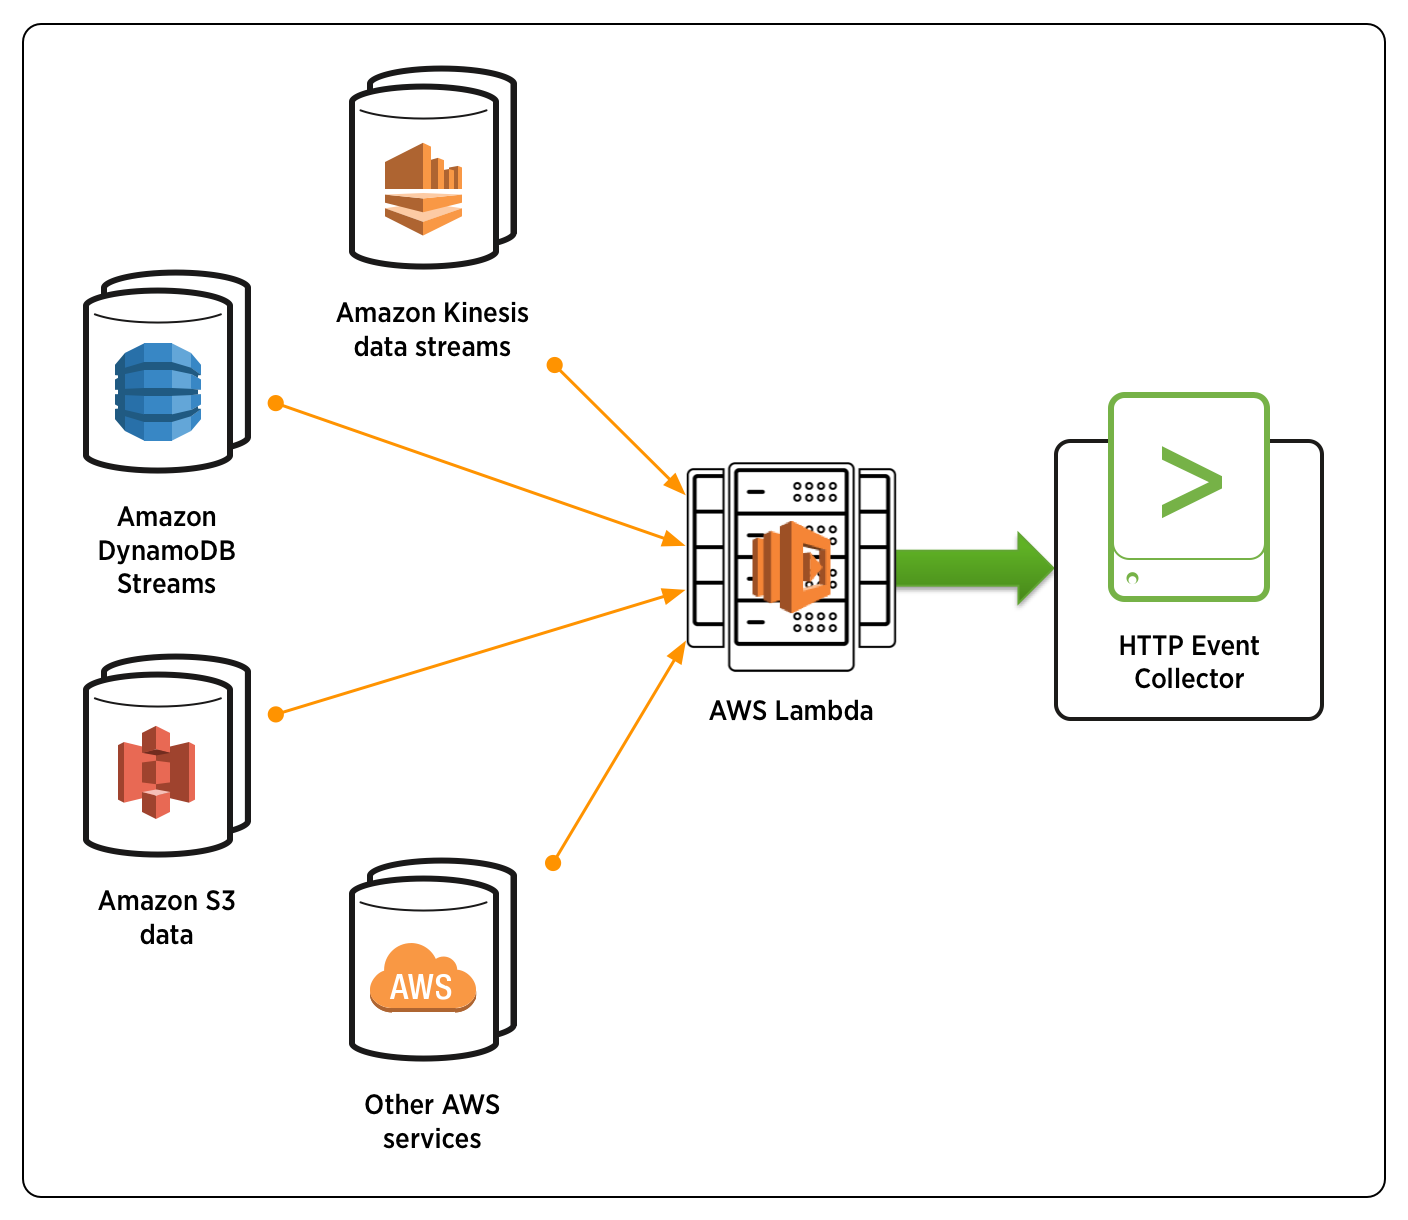 Diagram illustrating AWS services pointing to AWS Lambda pointing to HTTP Event Collector.